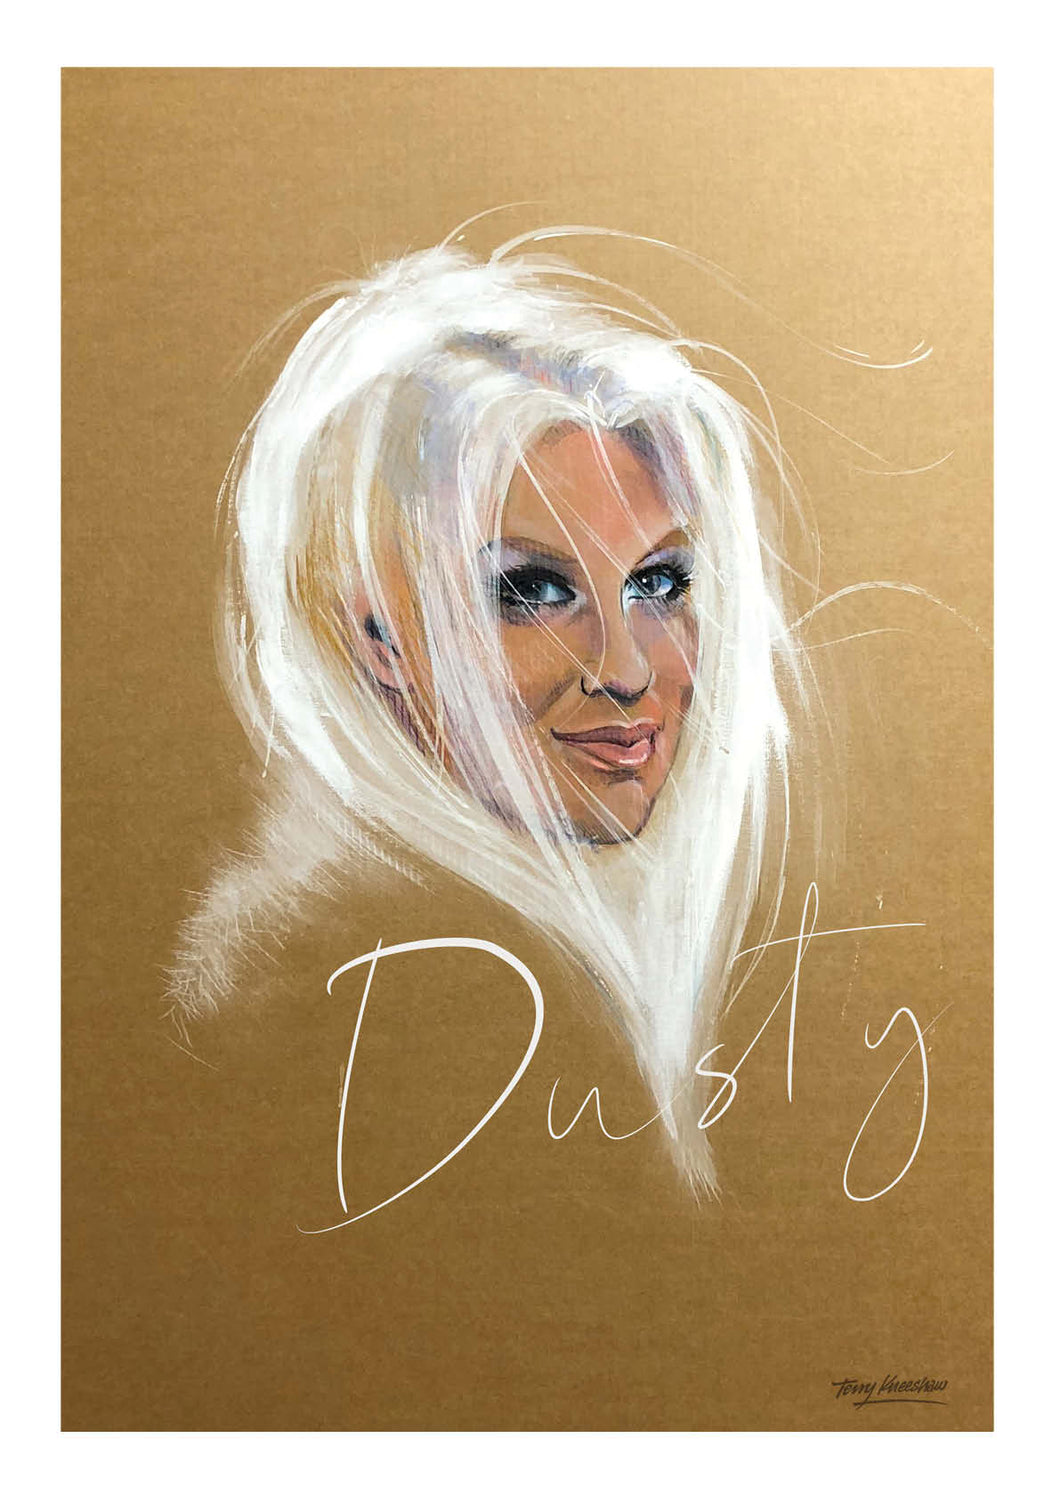 Dusty Springfield - Let Your Hair Down Tour 2021